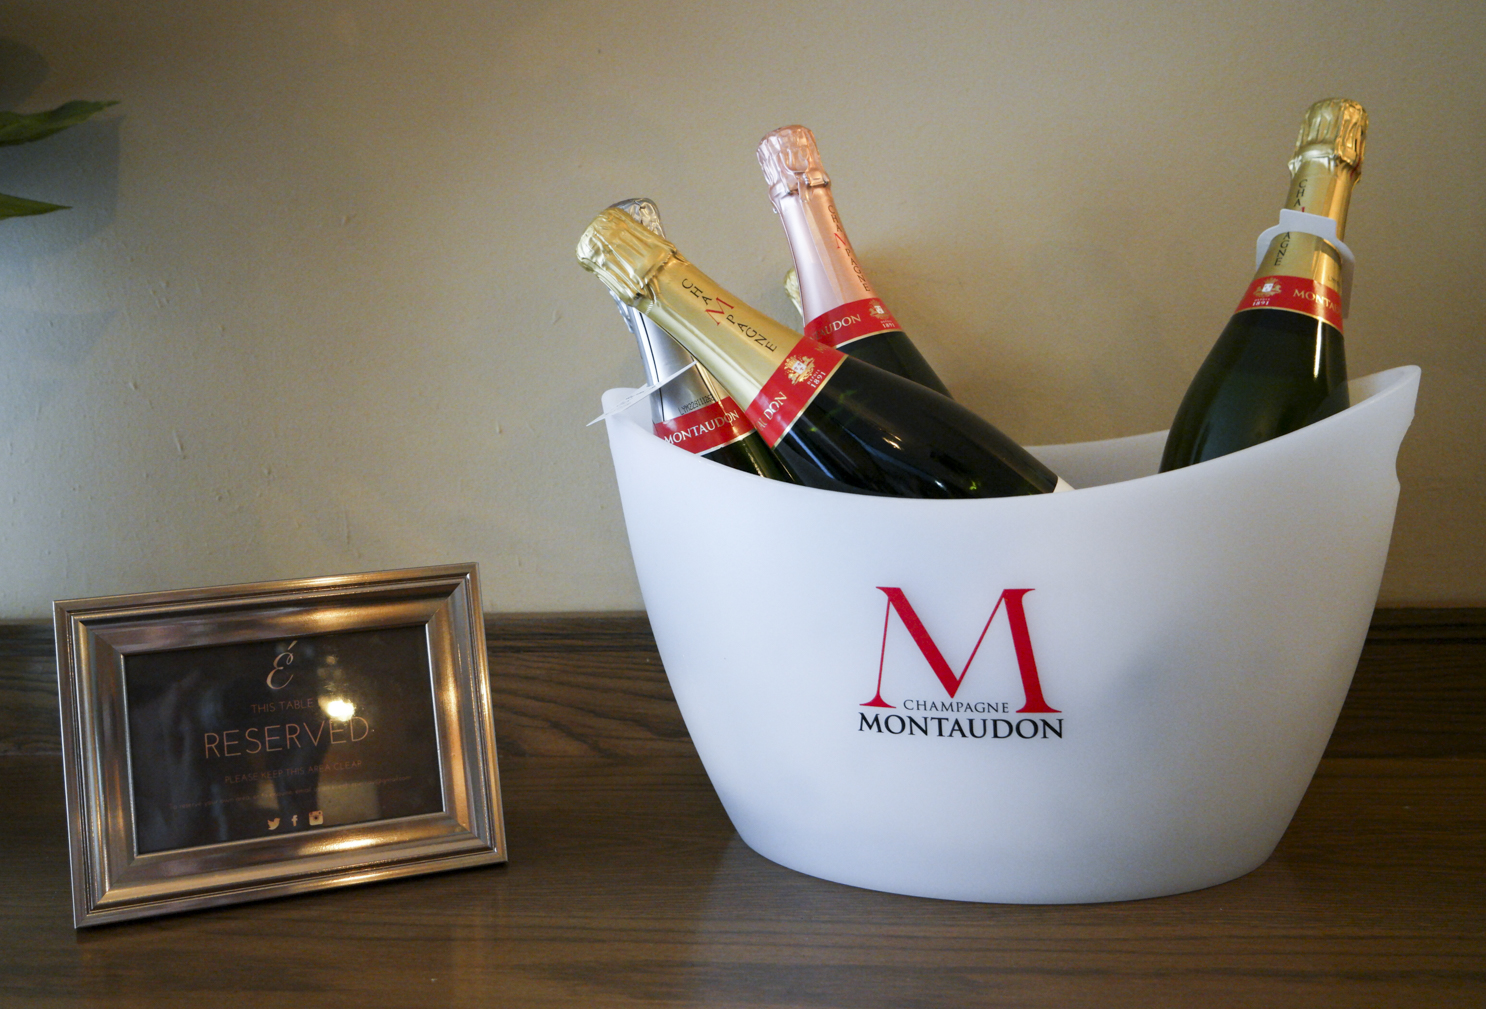 Bottles of champagne cooling in a Champagne bucket with ice on a wooden table next to a reserved sign